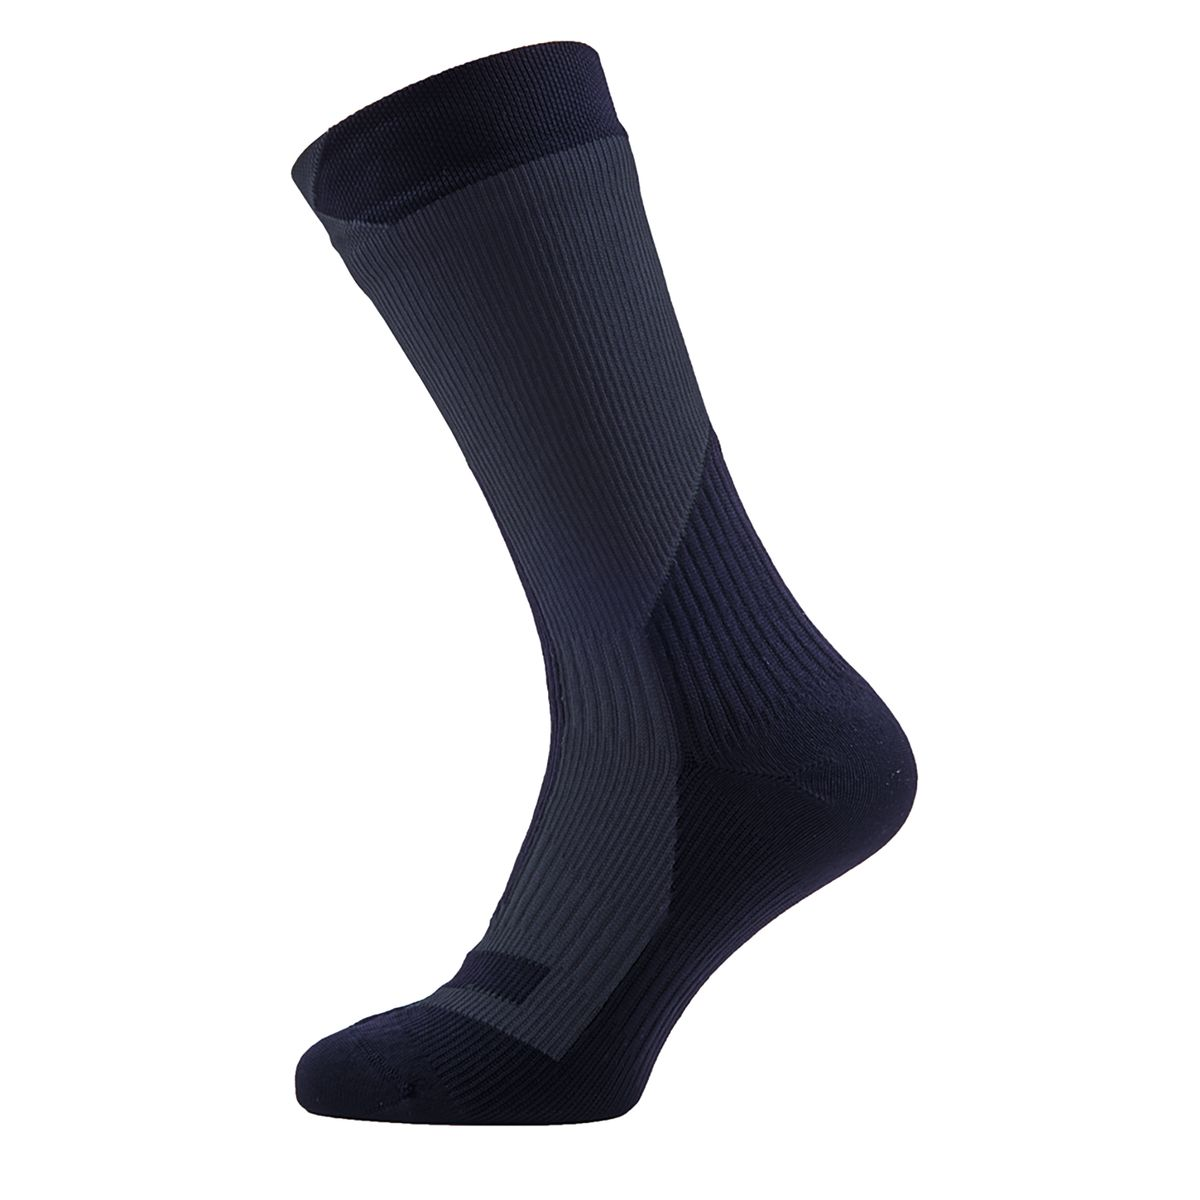 SEALSKINZ TREKKING THICK MID waterproof merino socks